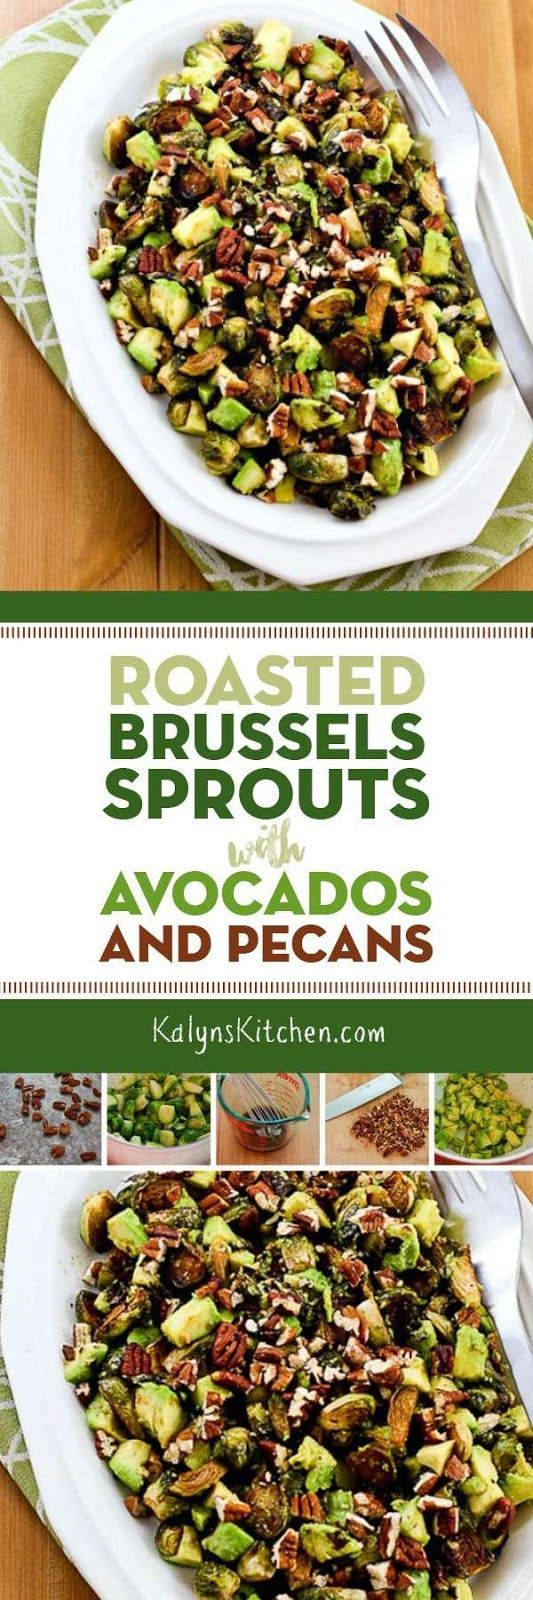 Roasted Brussels Sprouts with Avocados and Pecans are amazing for Thanksgiving or a special fall of winter meal, and these fabulous roasted brussels  sprouts are low-carb, gluten-free, Paleo, Whole 30, dairy-free, vegan, and South Beach Diet Phase One, so you can make them for anyone! [found on KalynsKitchen.com.]